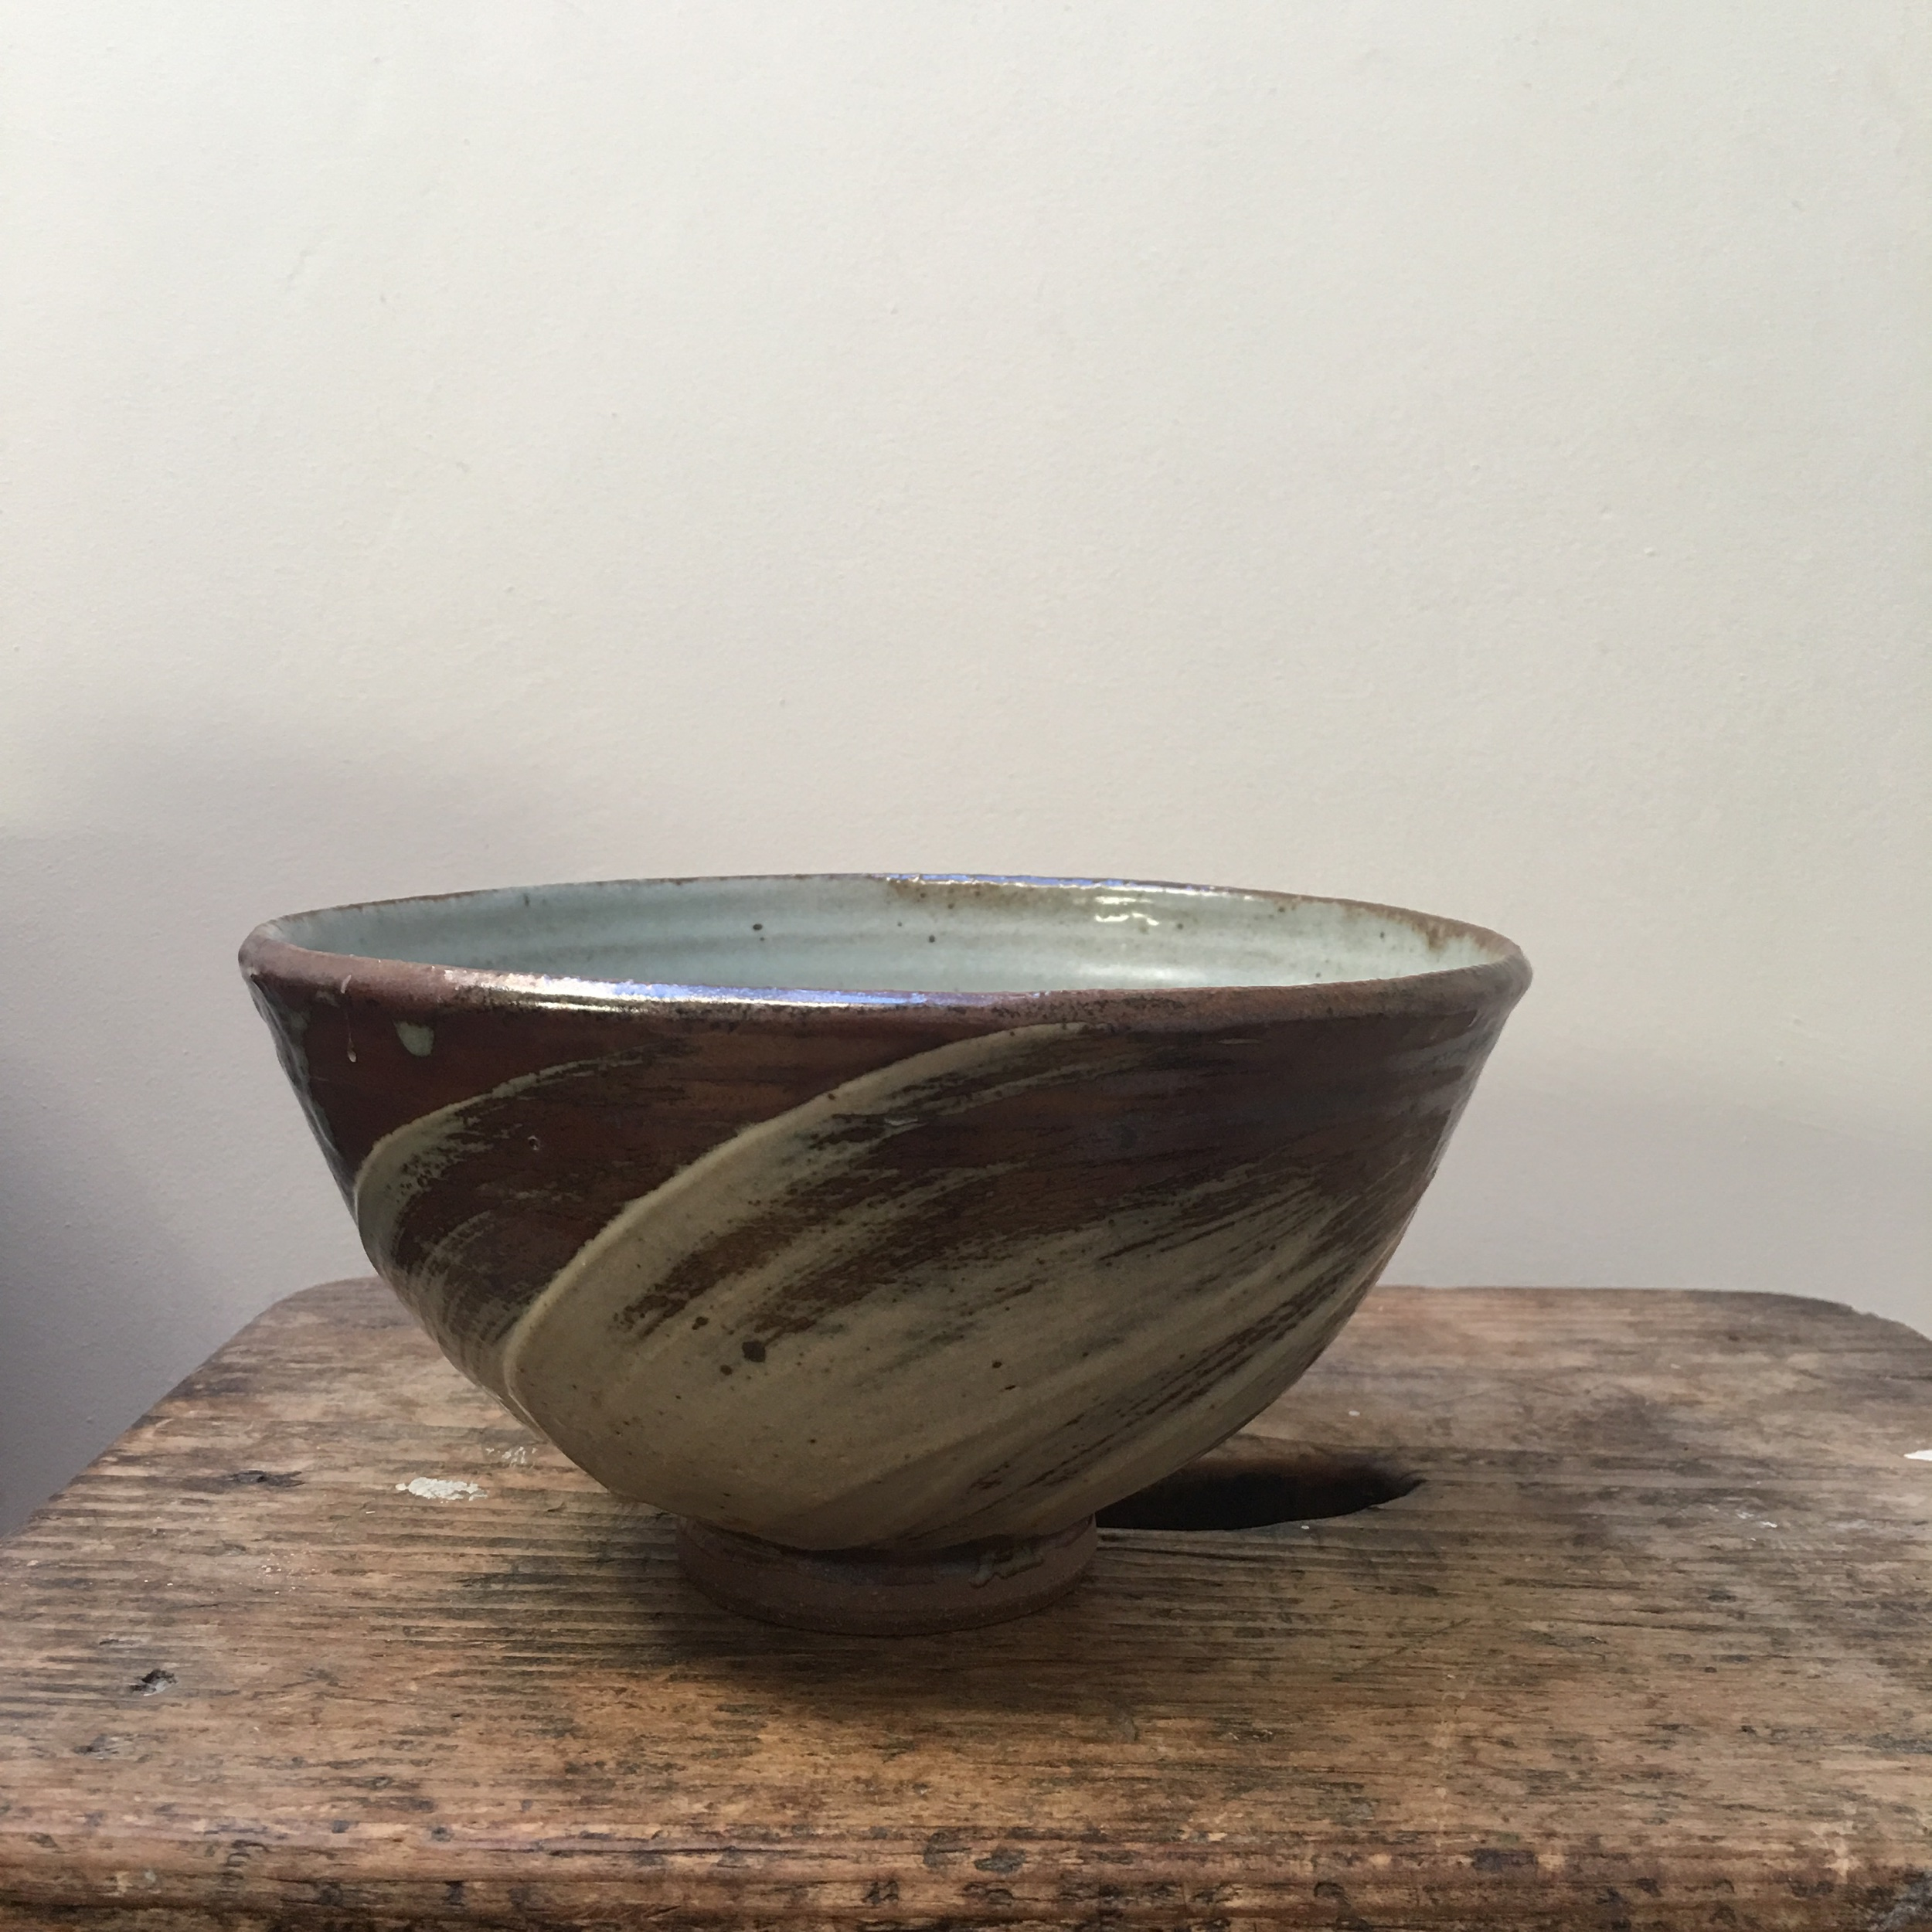 Part of a small body of work made during a masterclass with Roelof Uys at the Leach Pottery, St Ives in 2018